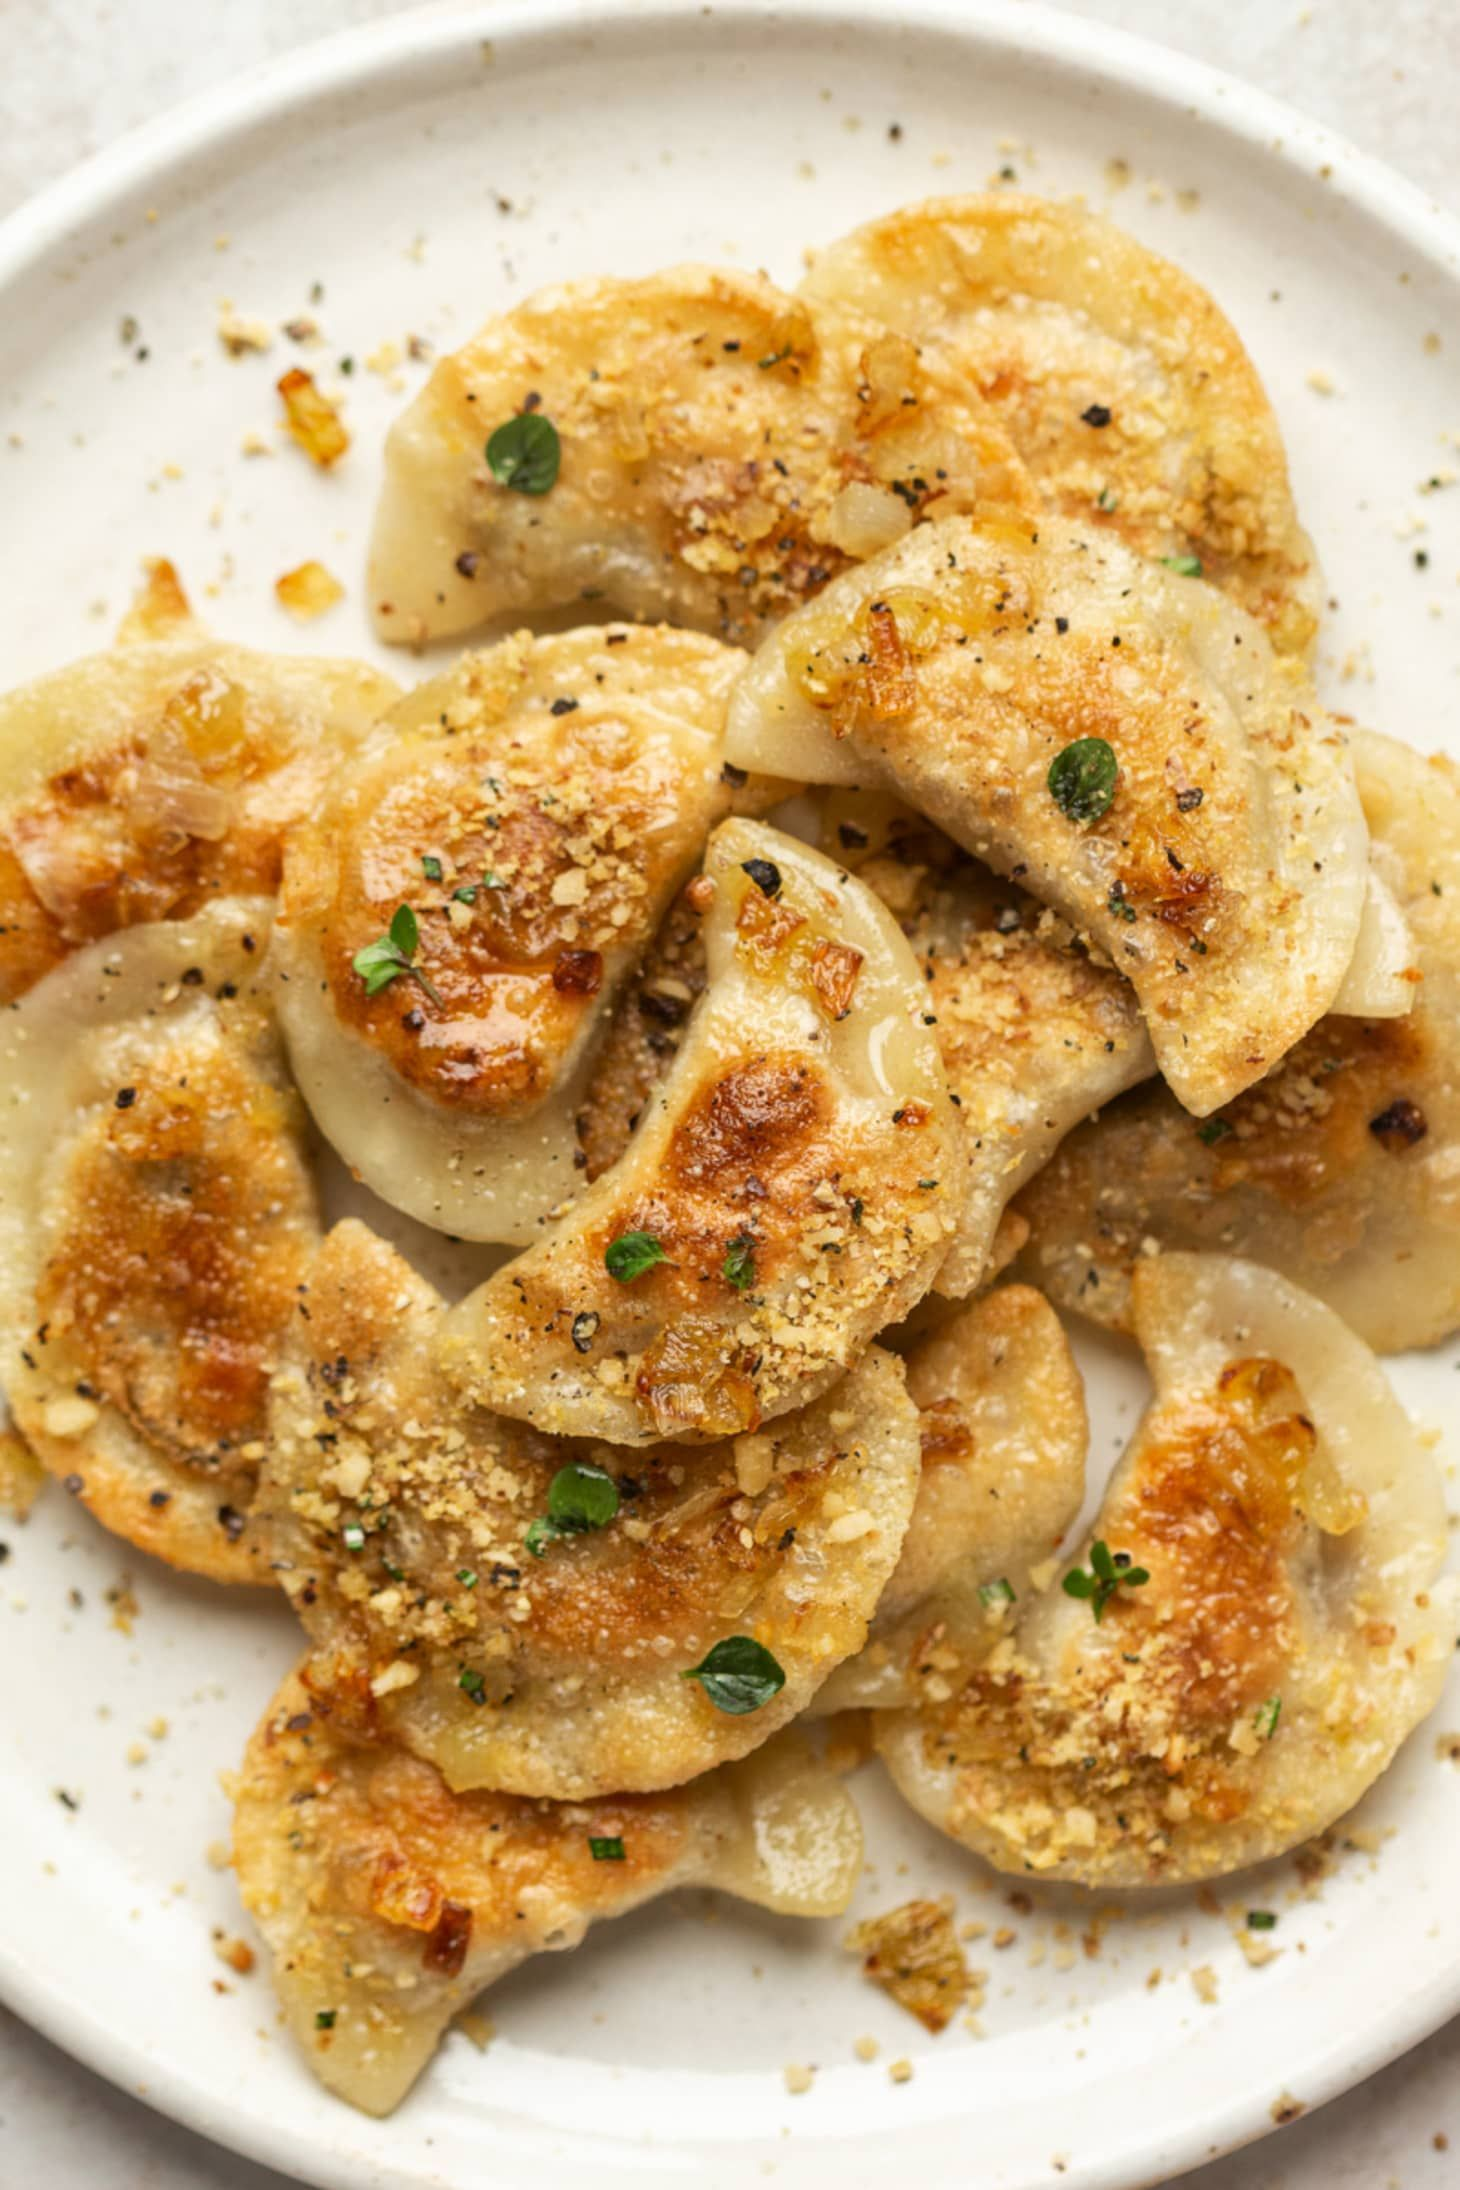 Make Cabbage and Mushroom Pierogi for Your Holiday Party